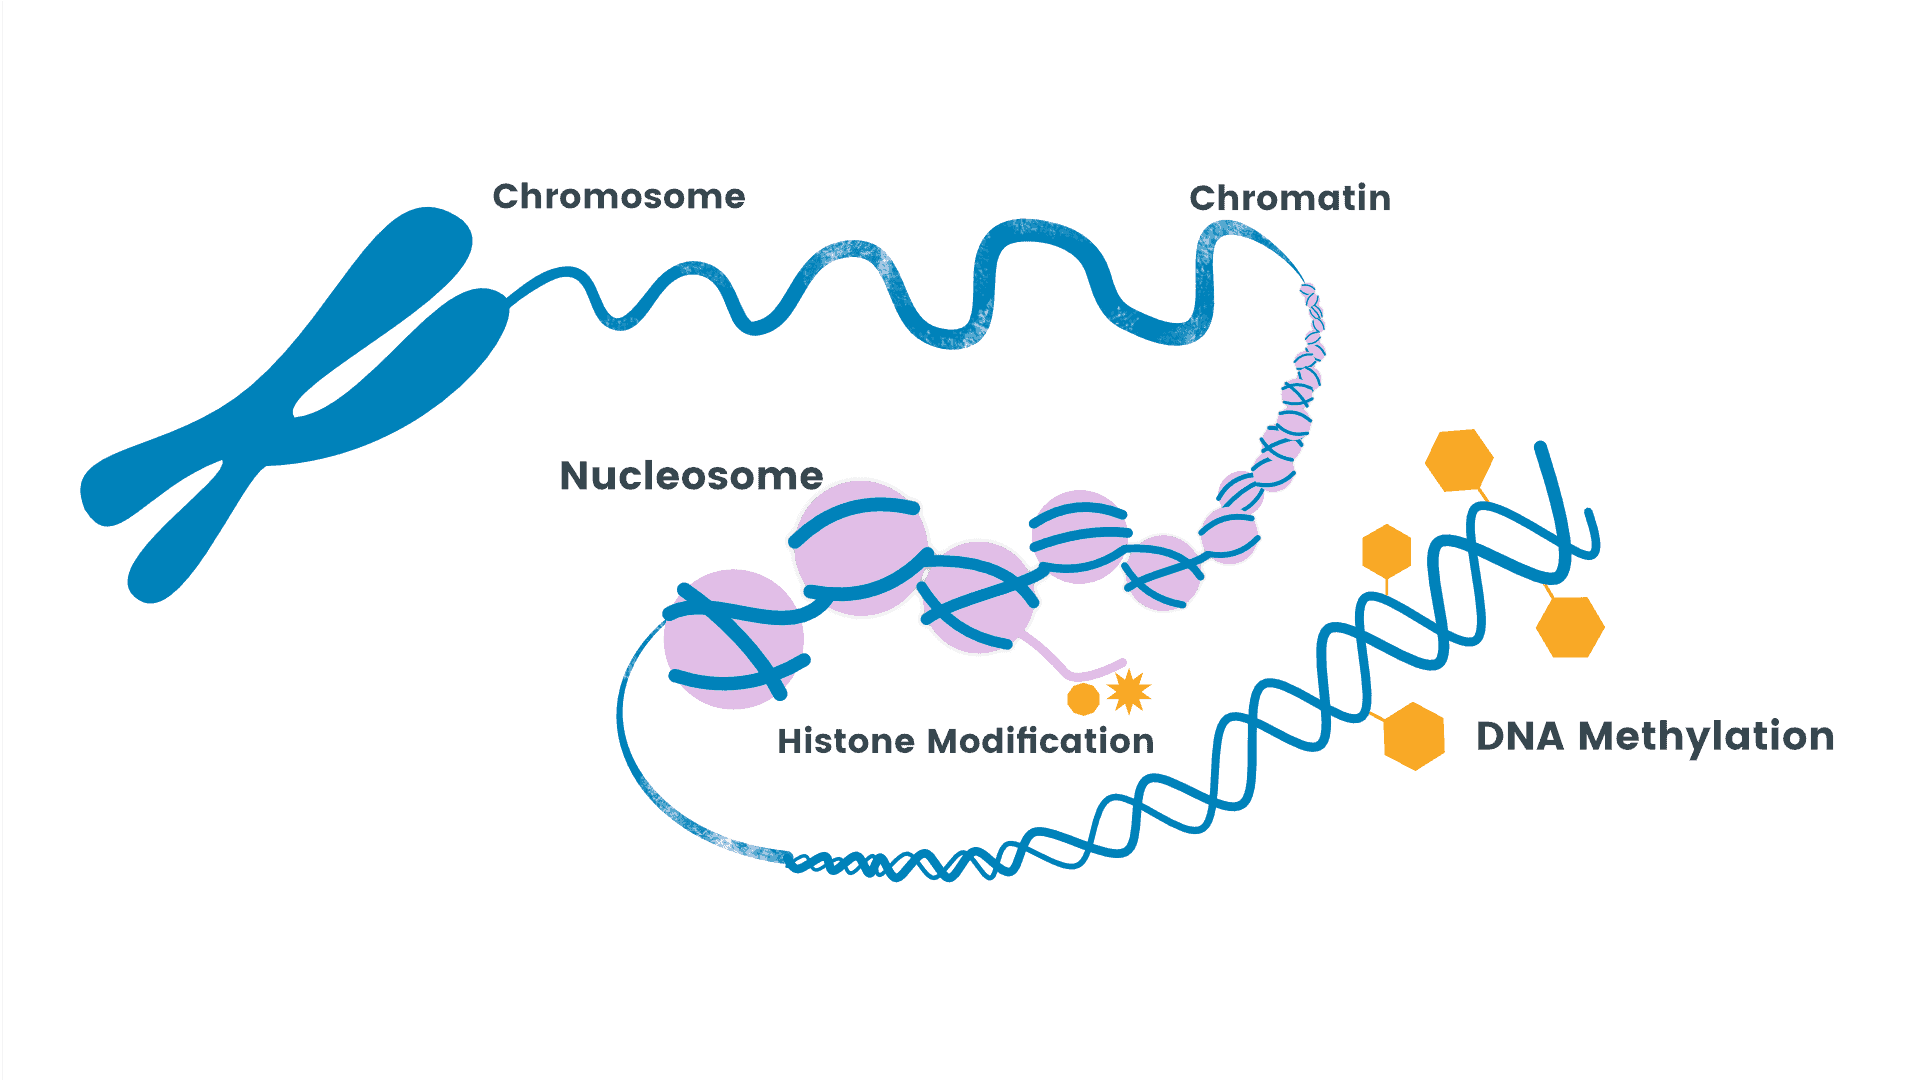 DNA Methylation - NUGENIS supports the DNA Methylation with Applied Epigenetics